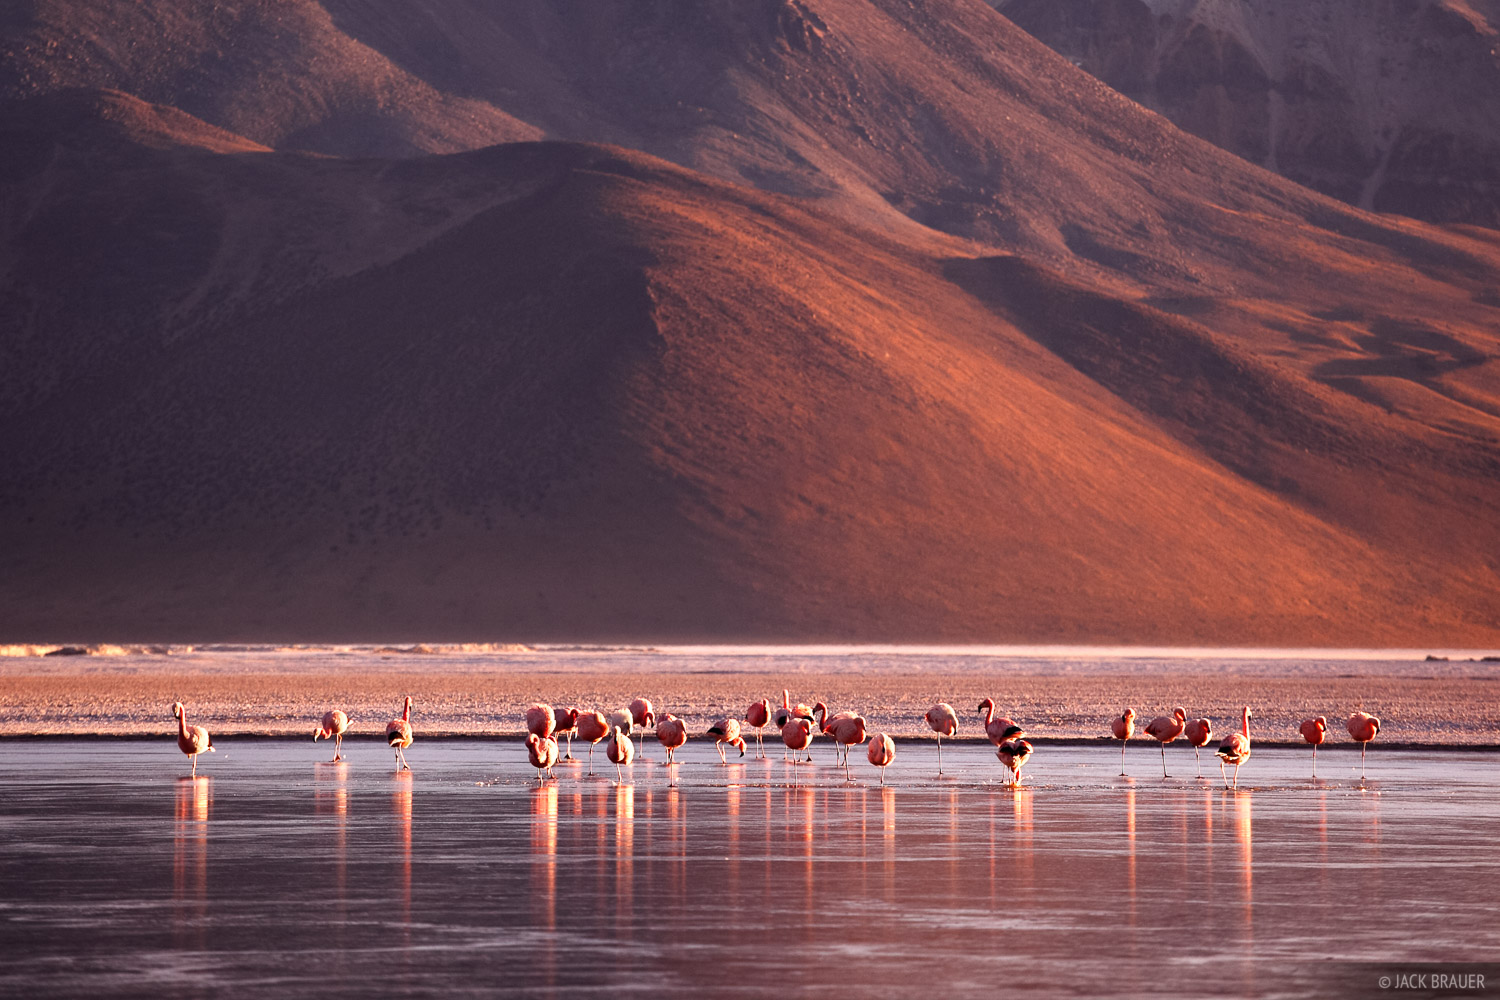 Salar de Surire, flamingos, sunrise, photo